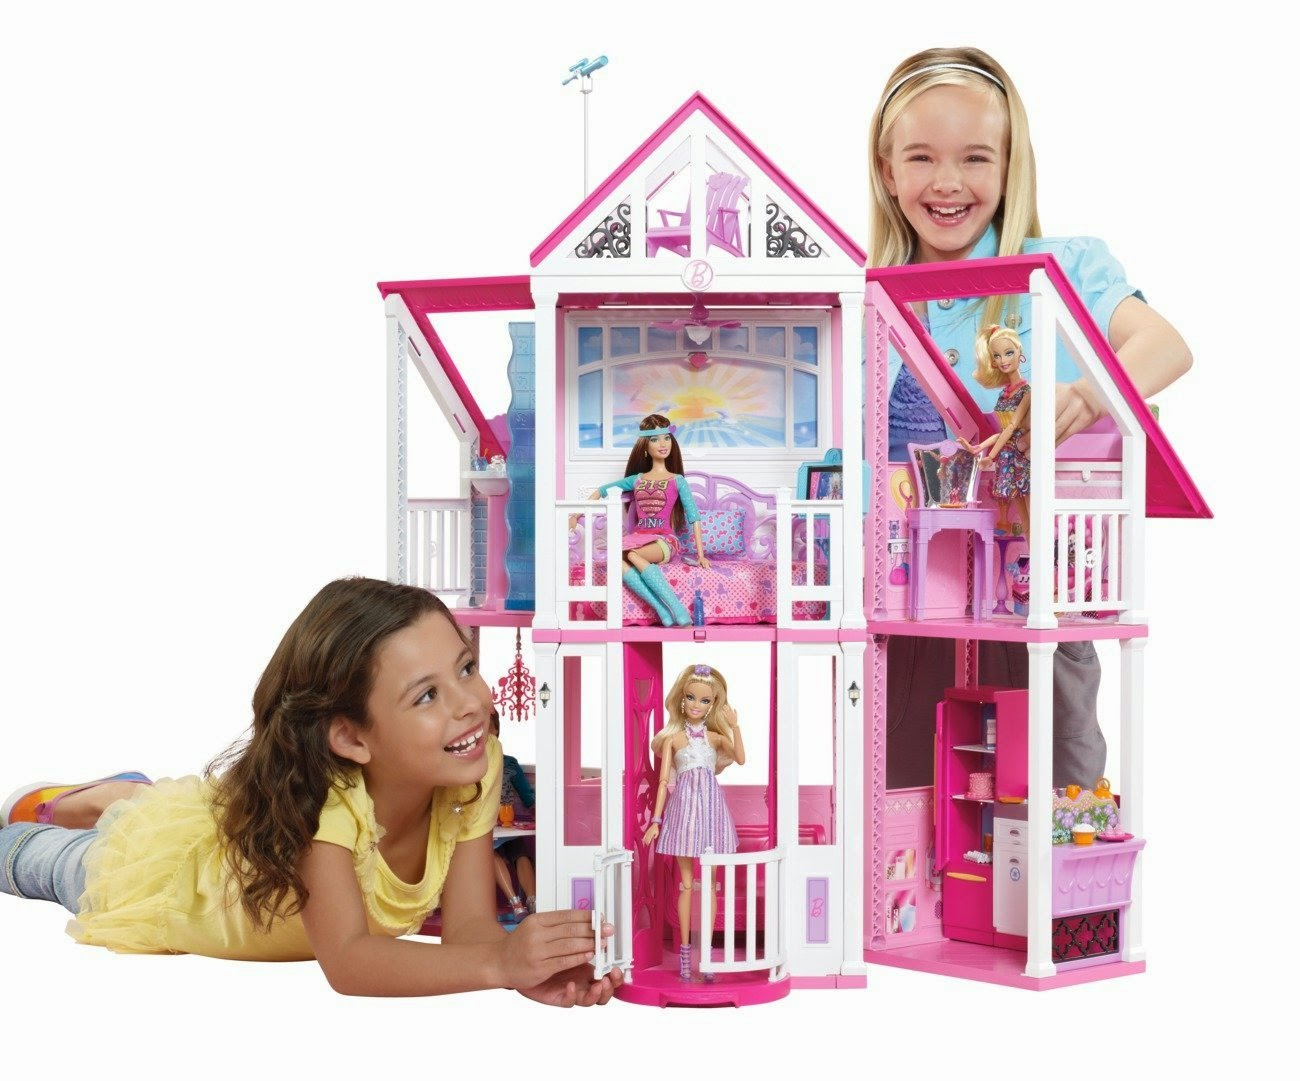 Giochi barbie la casa di malibu di barbie in offerta for Accessori per la casa di barbie